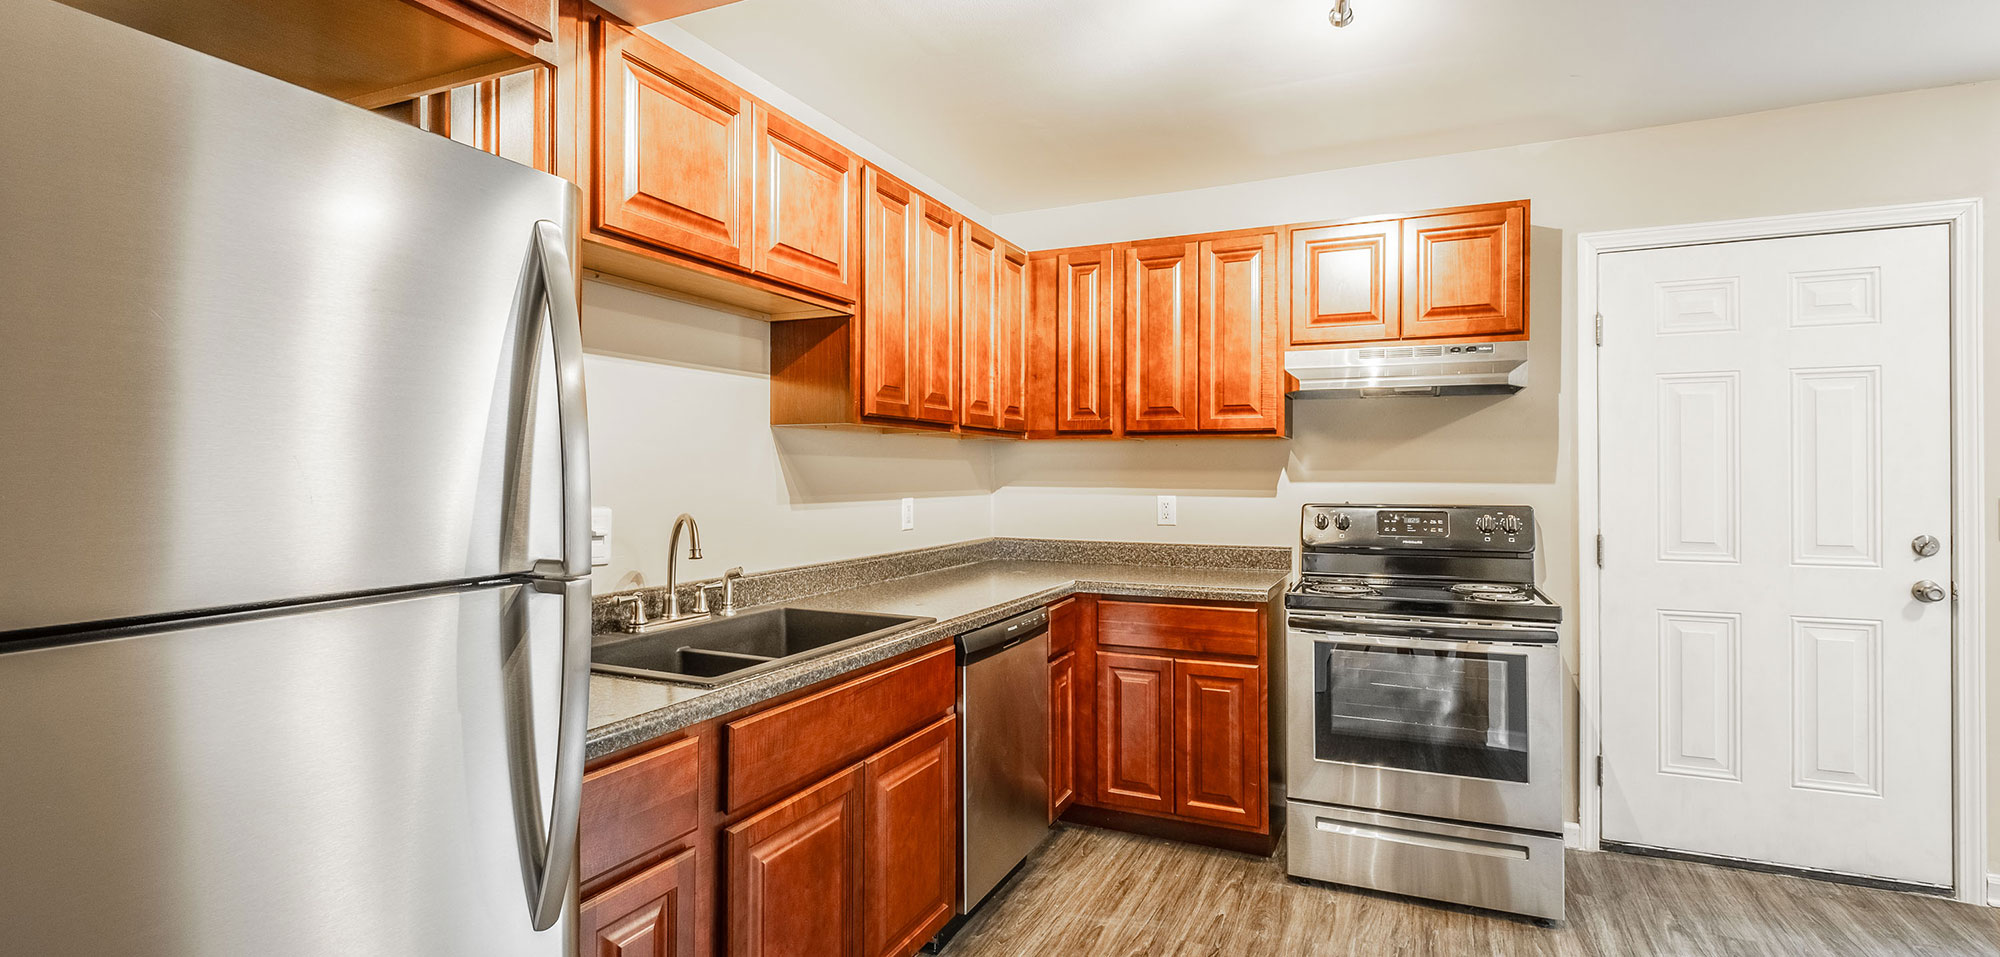 Apartments For Rent - Keystone